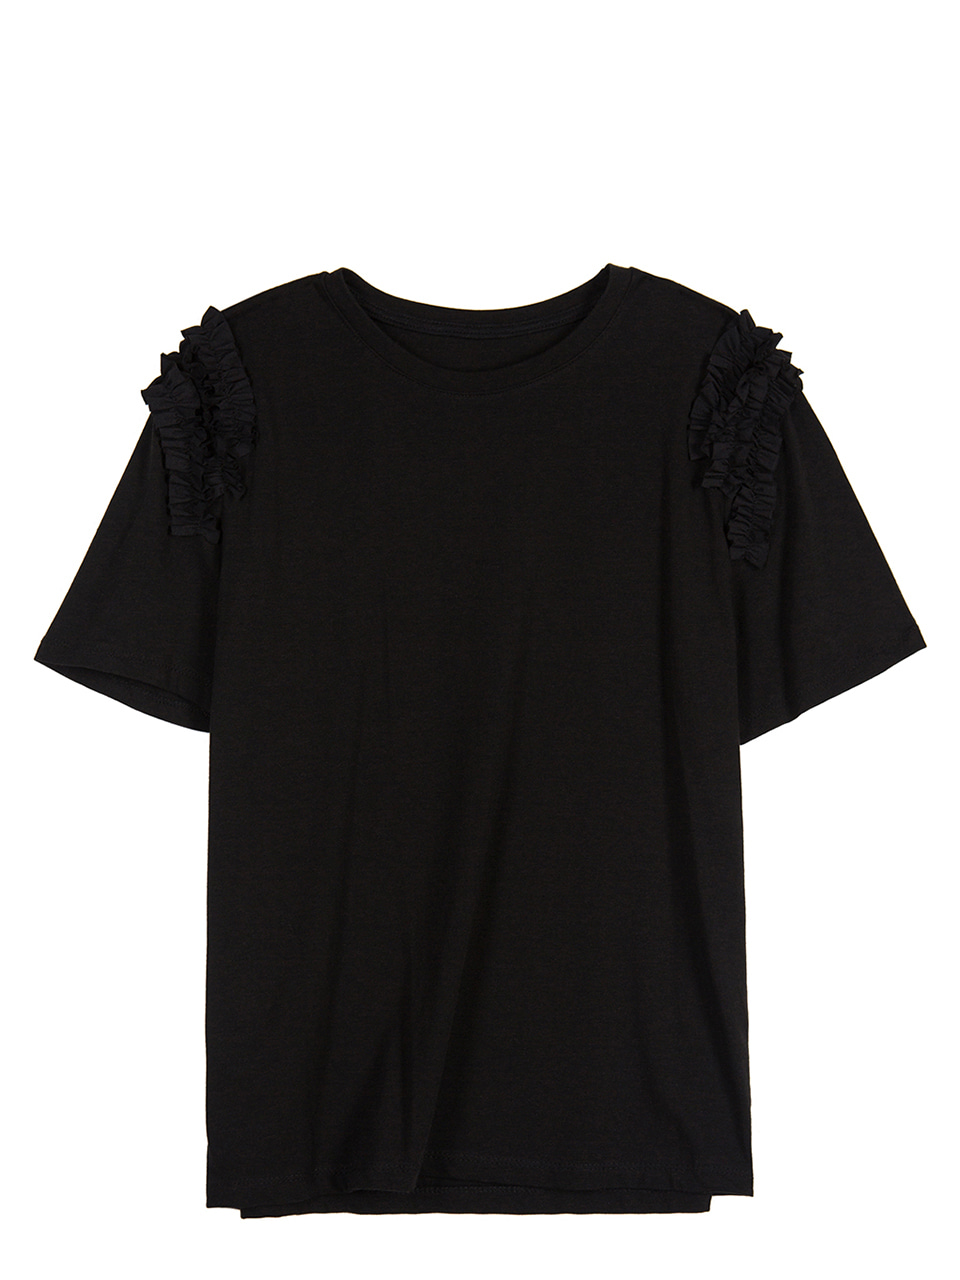 Ruffle Shoulder T-shirts - black